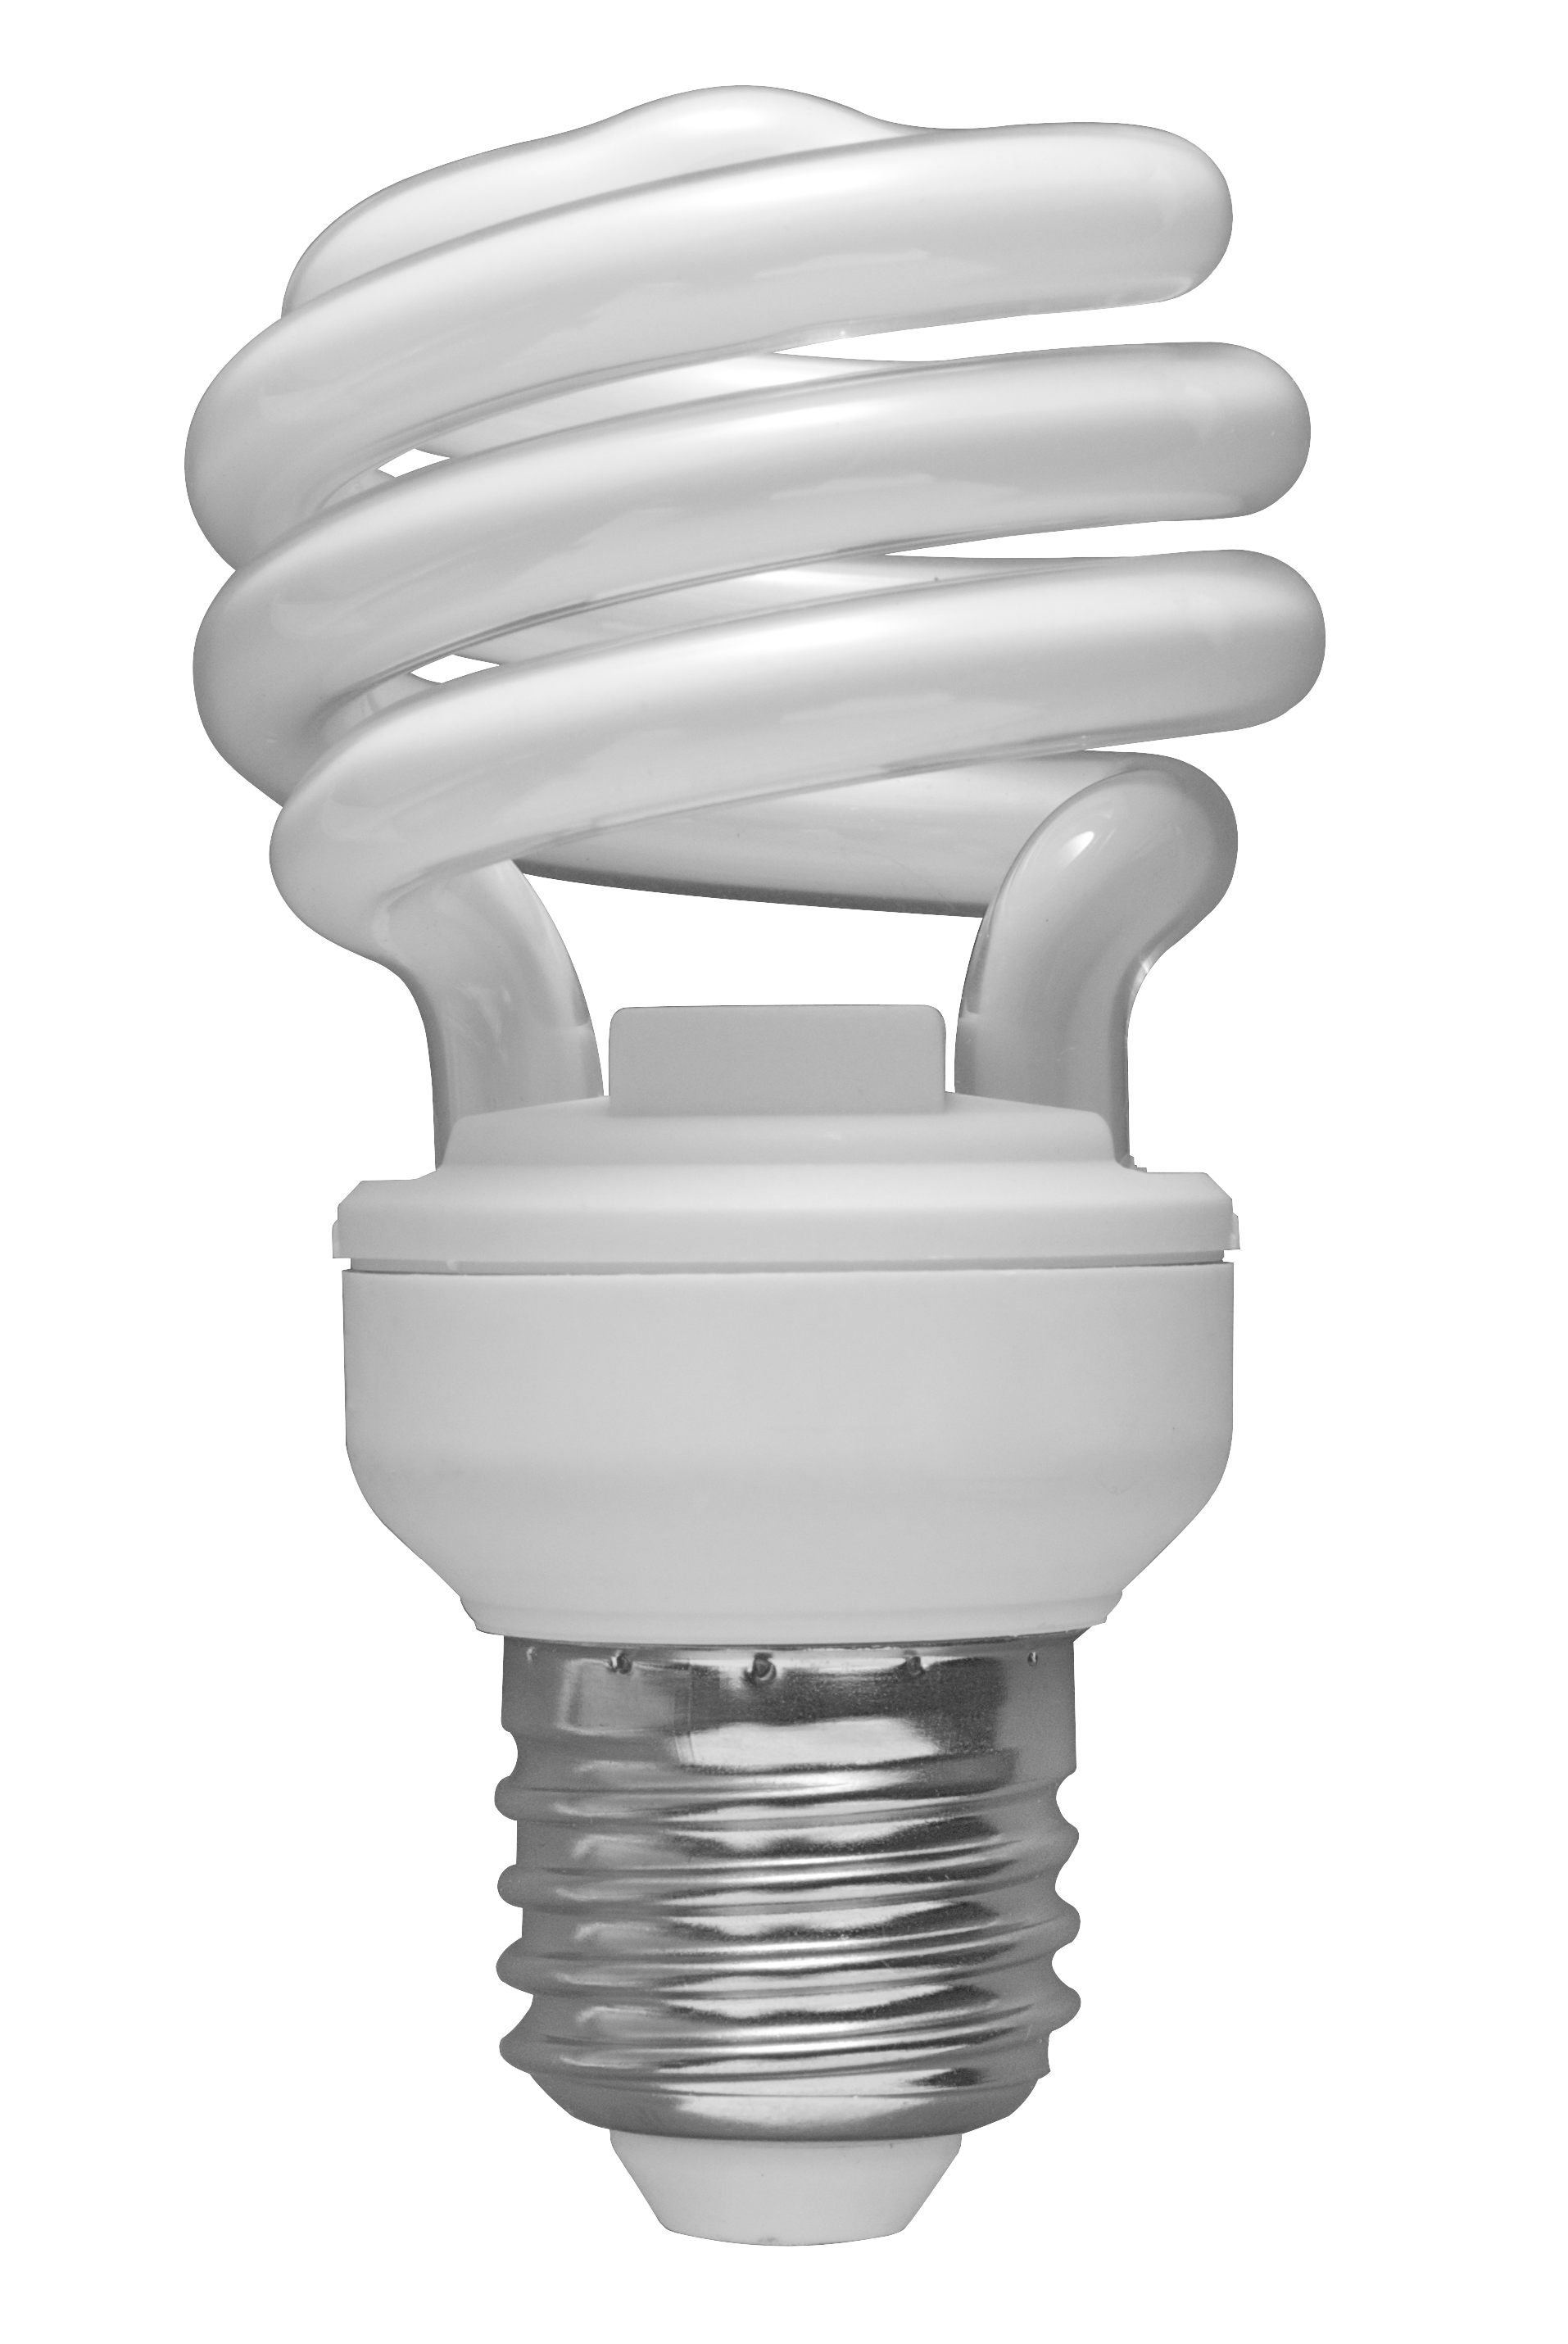 File 01 spiral cfl bulb 2010 03 08 transparent back png wikimedia commons Fluorescent light bulb